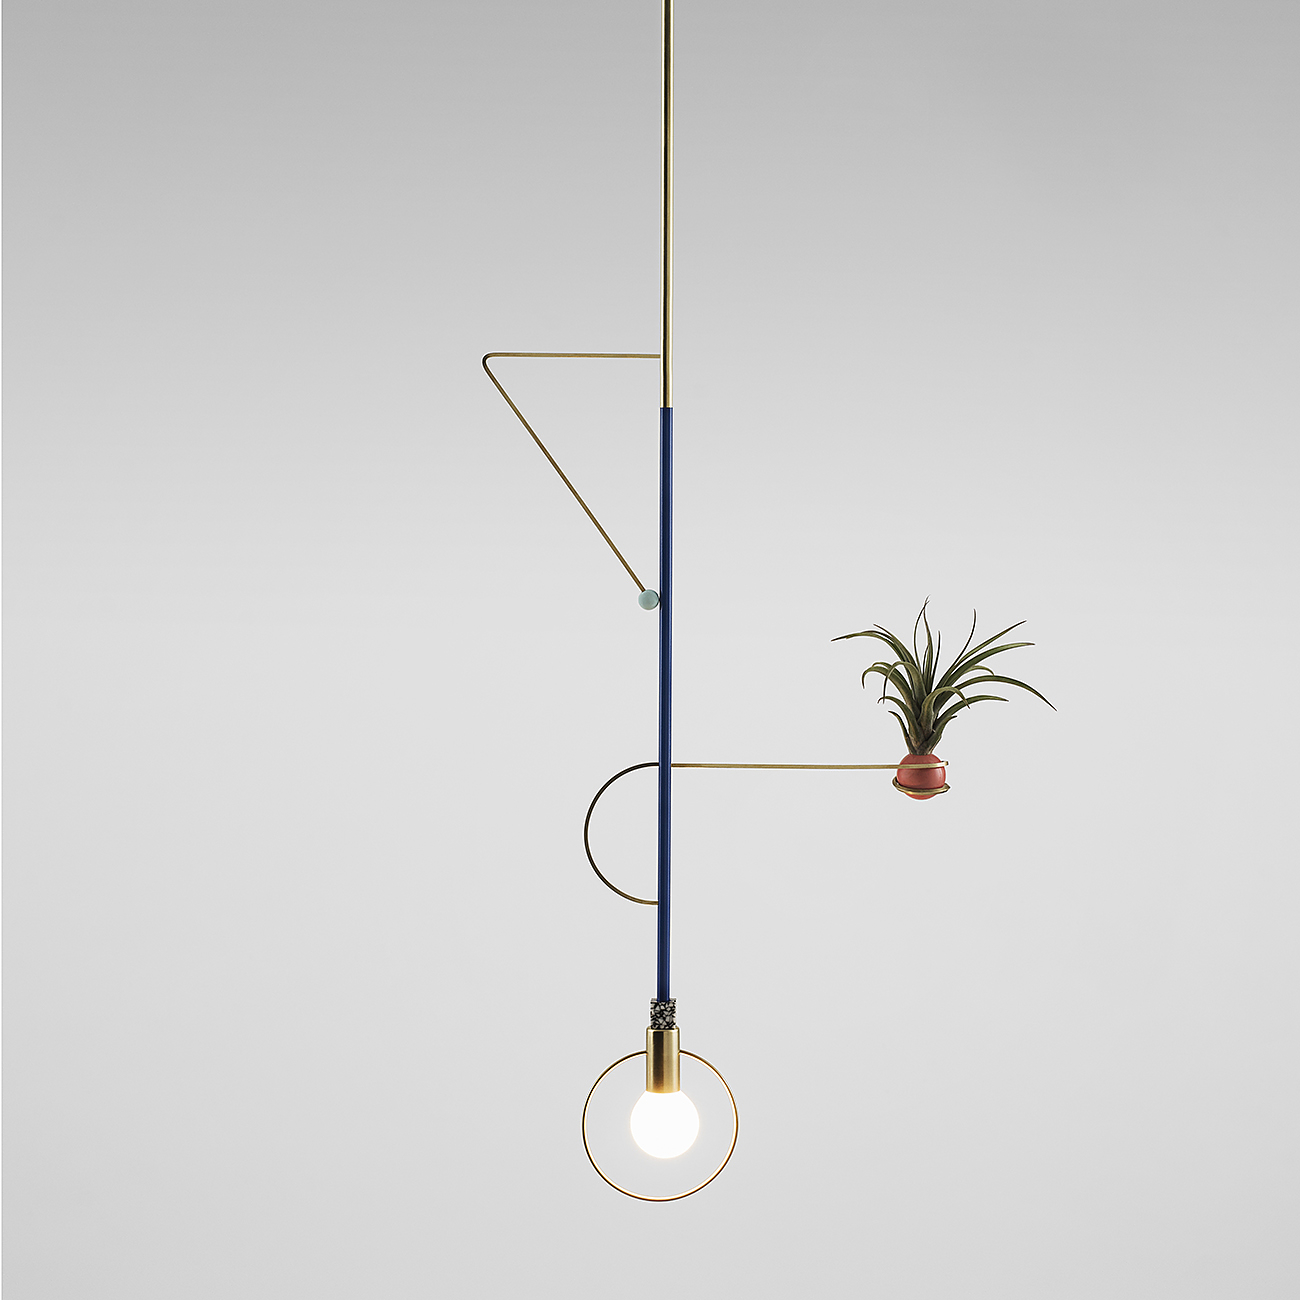 Calder Inspired Artistic Lamps by Jean-Pascal Gauthier.